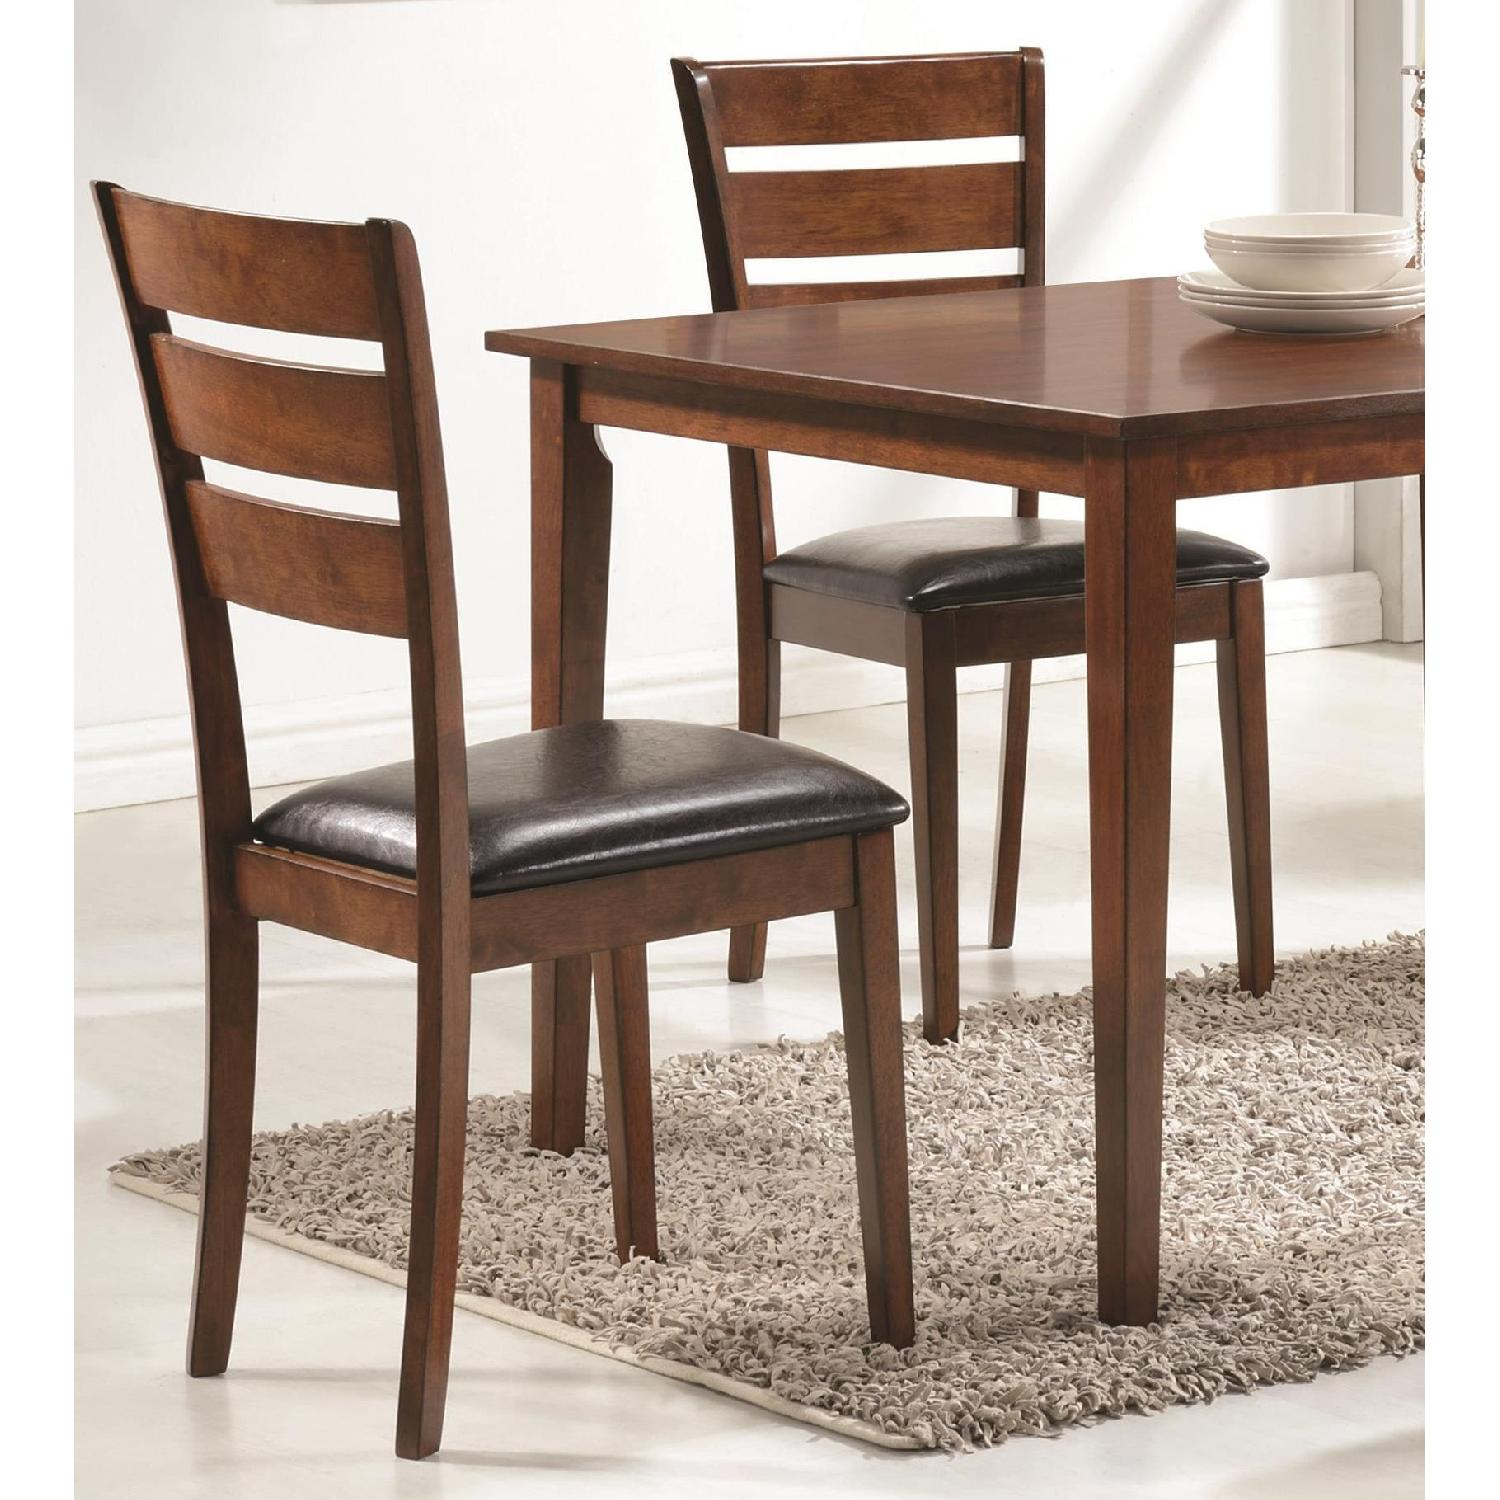 5 Piece Dining Set in Medium Warm Brown Finish - image-3